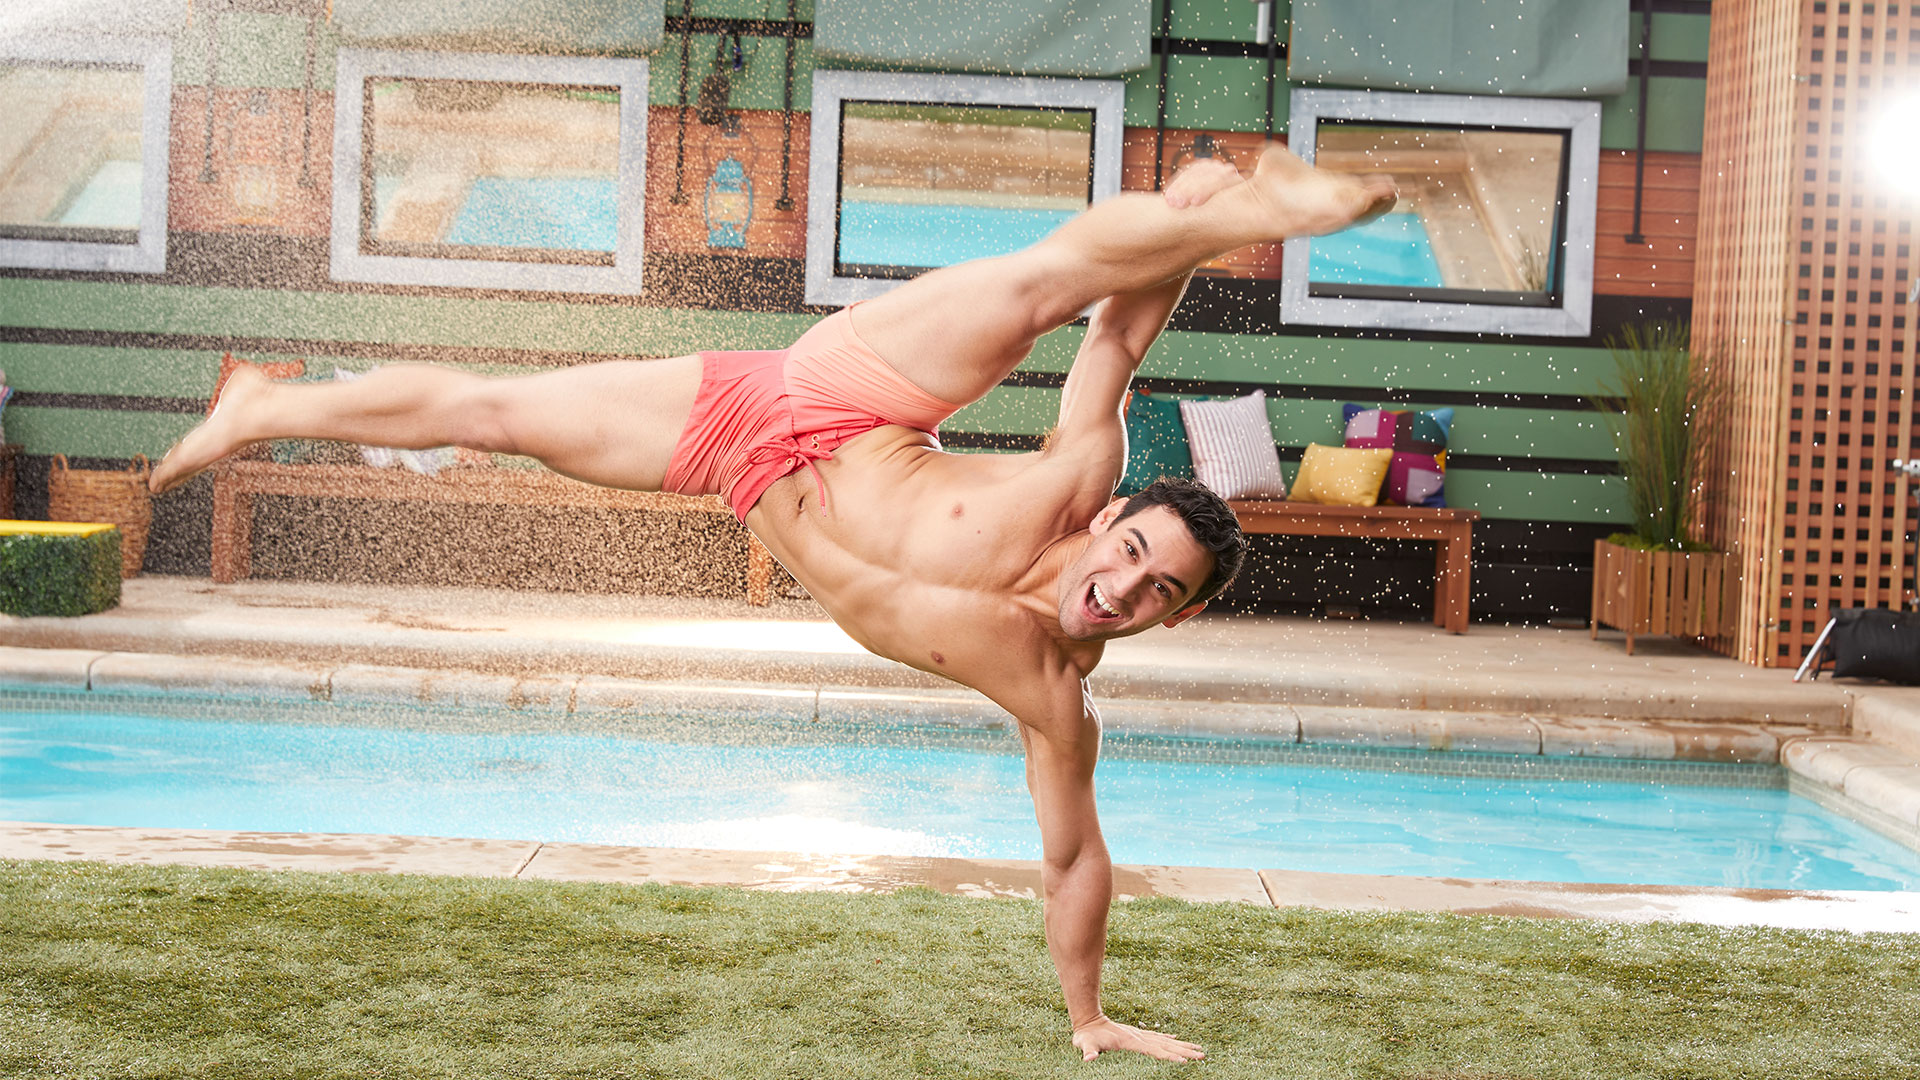 Indoors or out, Tommy Bracco's got the moves to steal the spotlight in the Big Brother house.